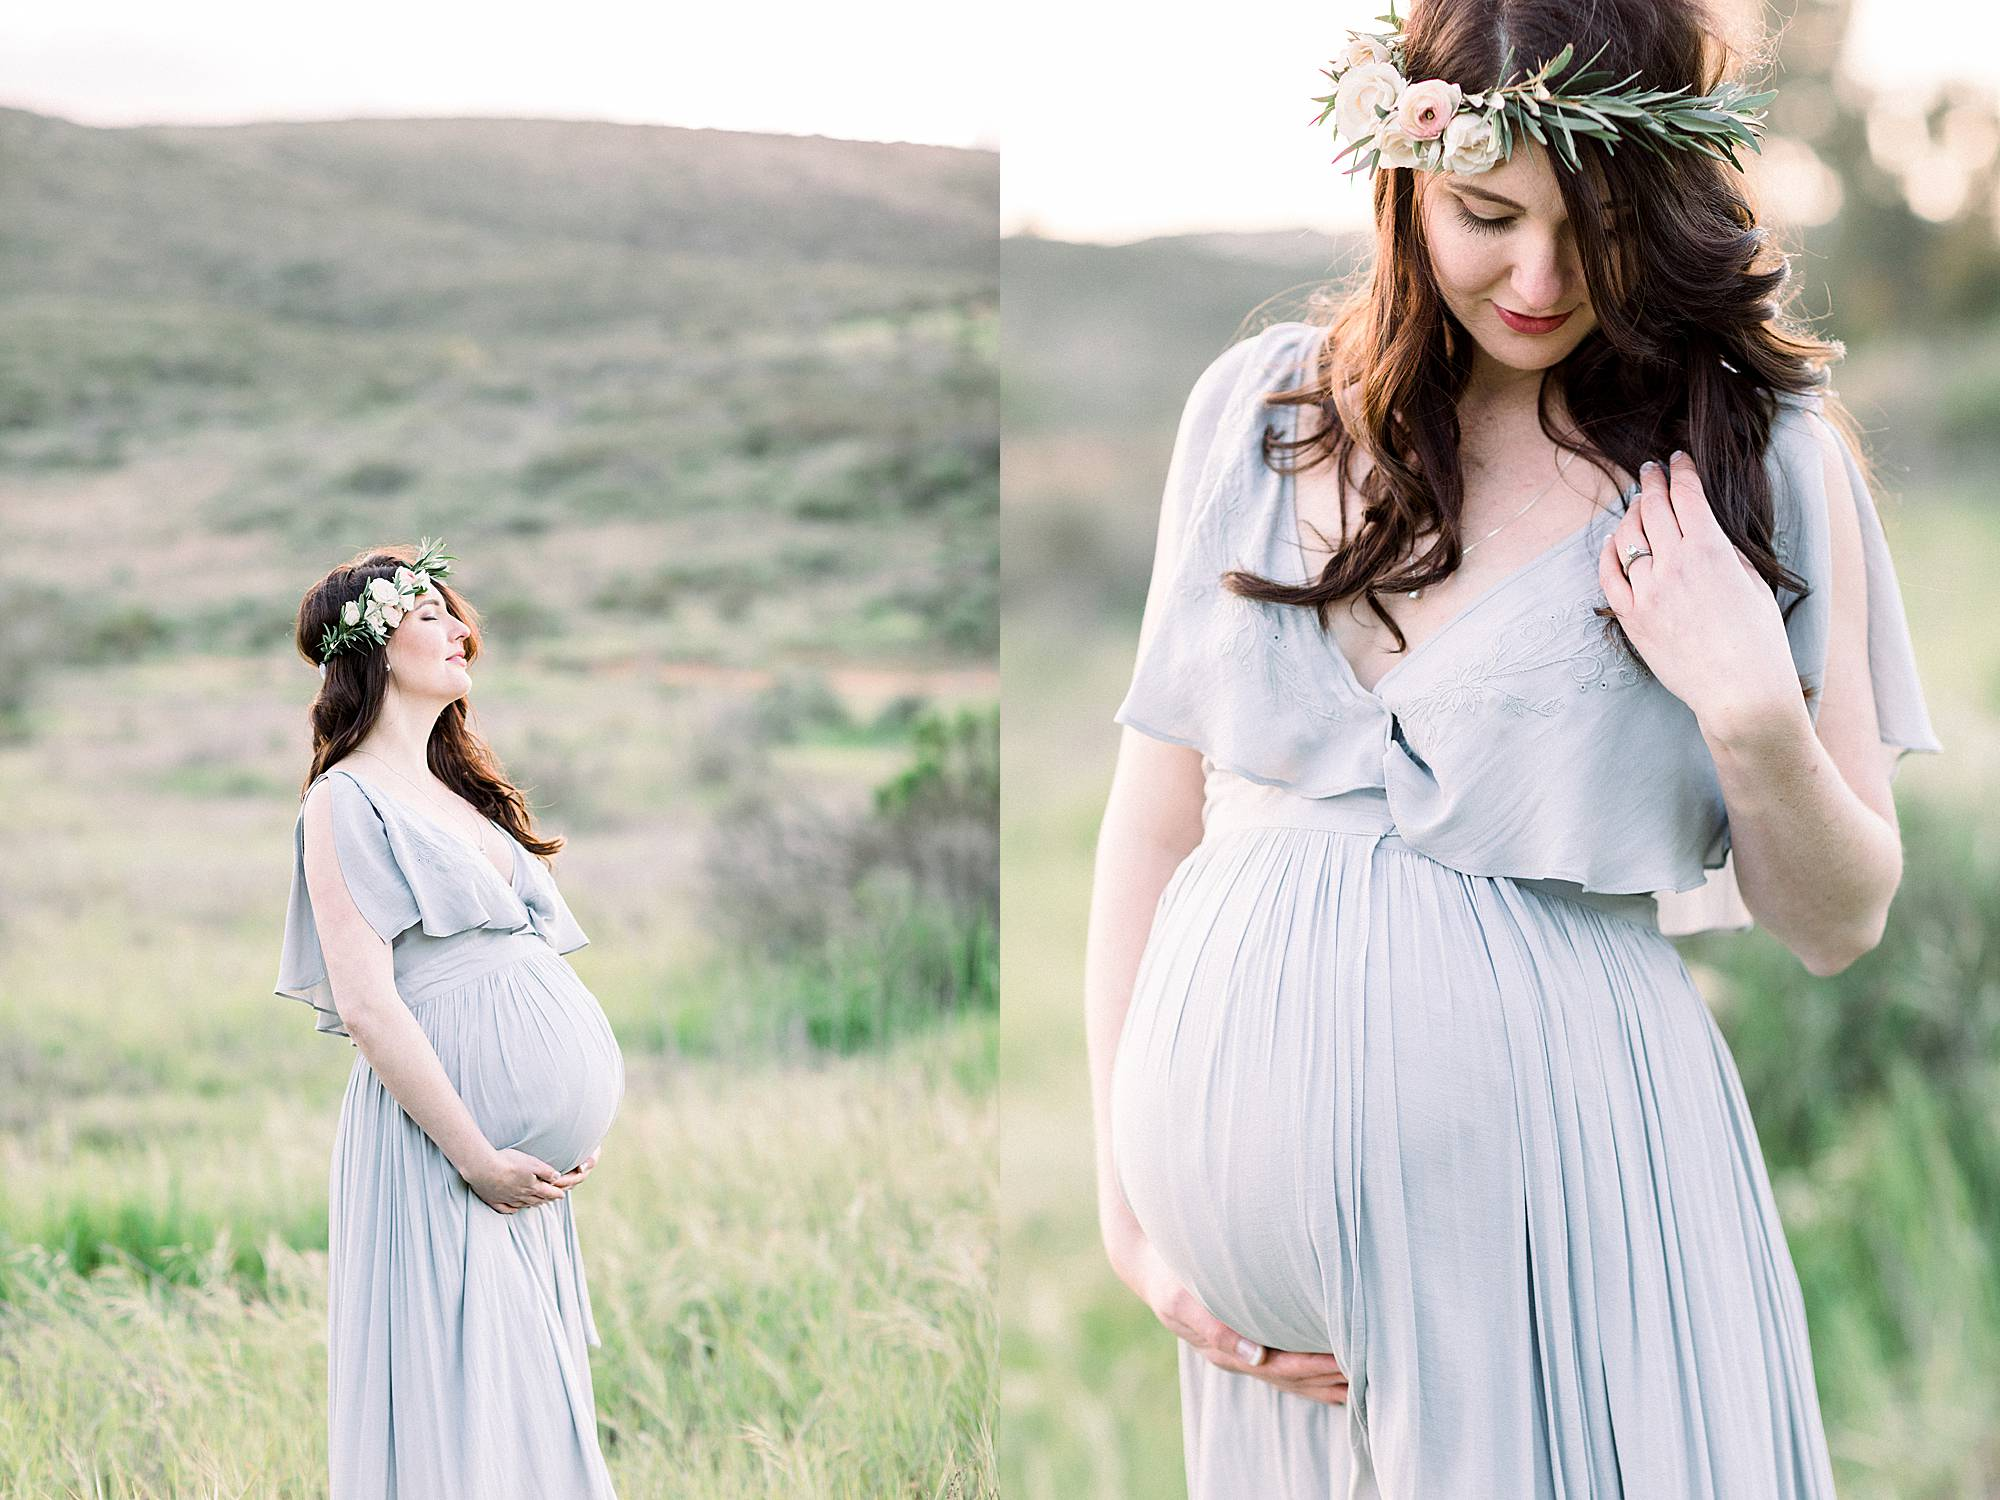 outdoor maternity photo in field